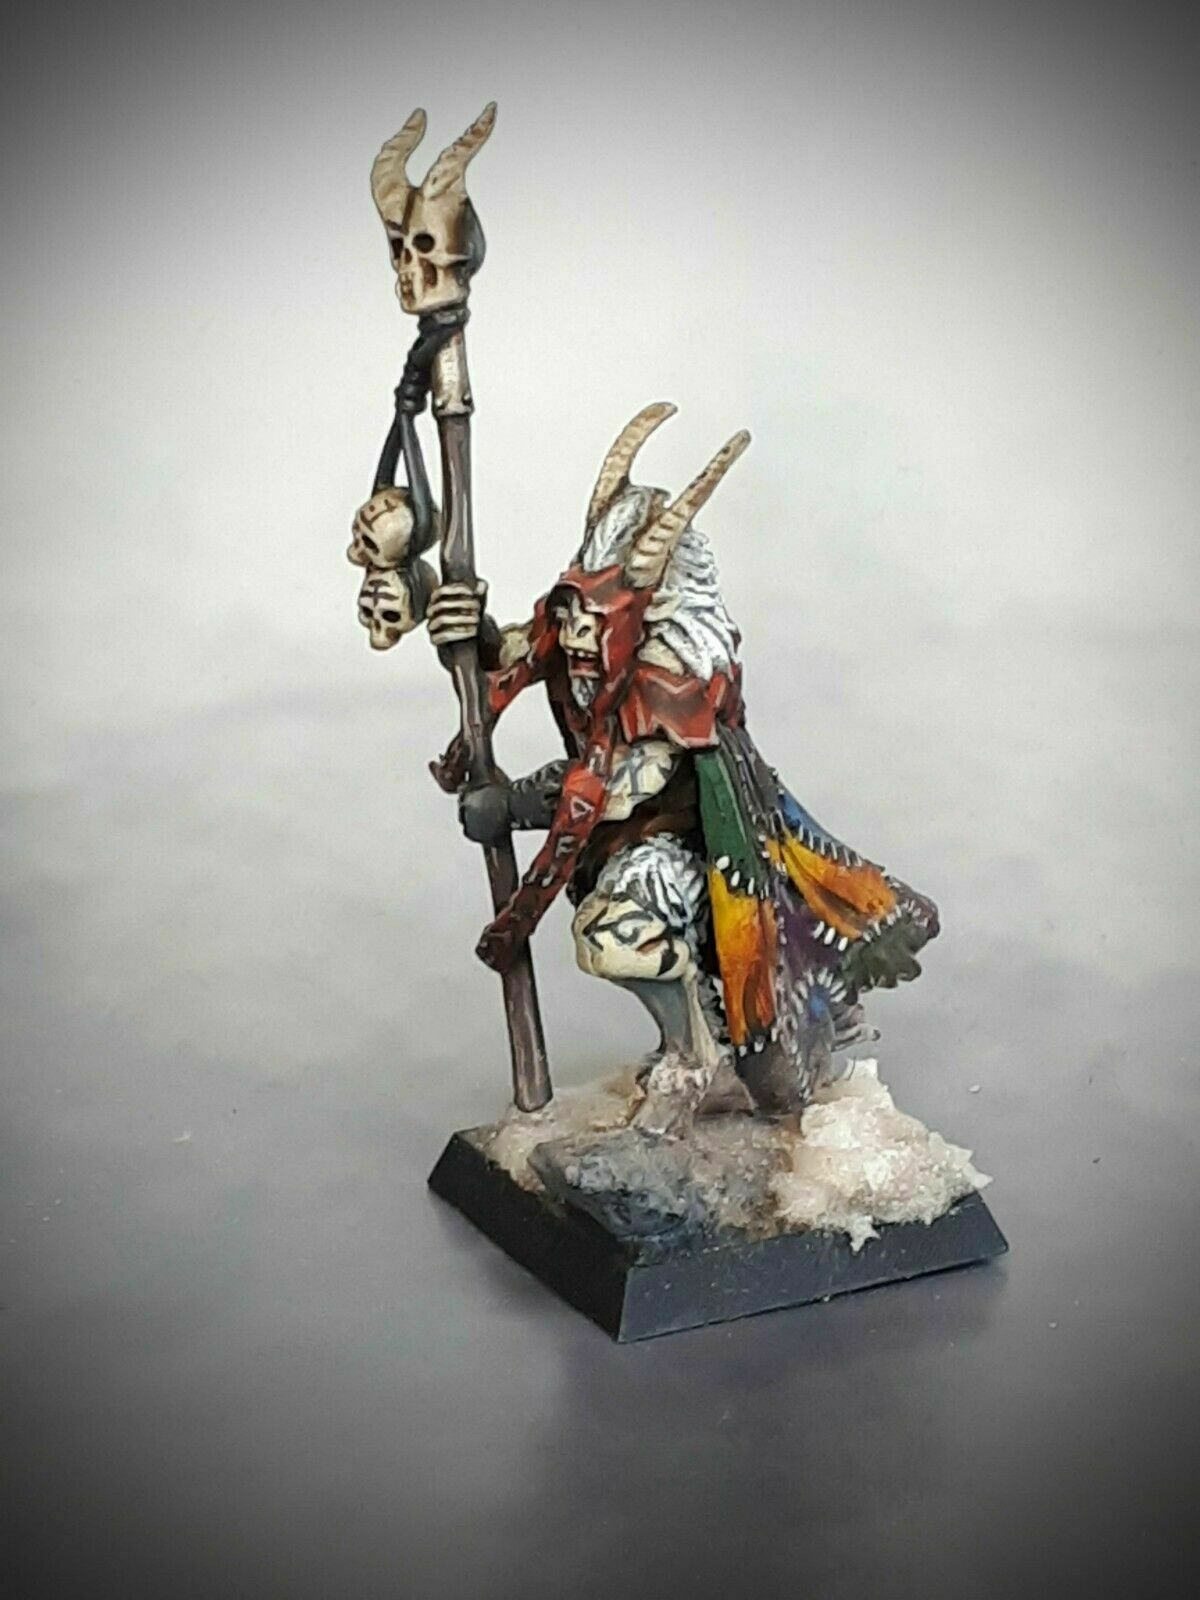 ❶ WARHAMMER Fantasy AoS Wargames Games Workshop Model Citadel Beastmen Shaman